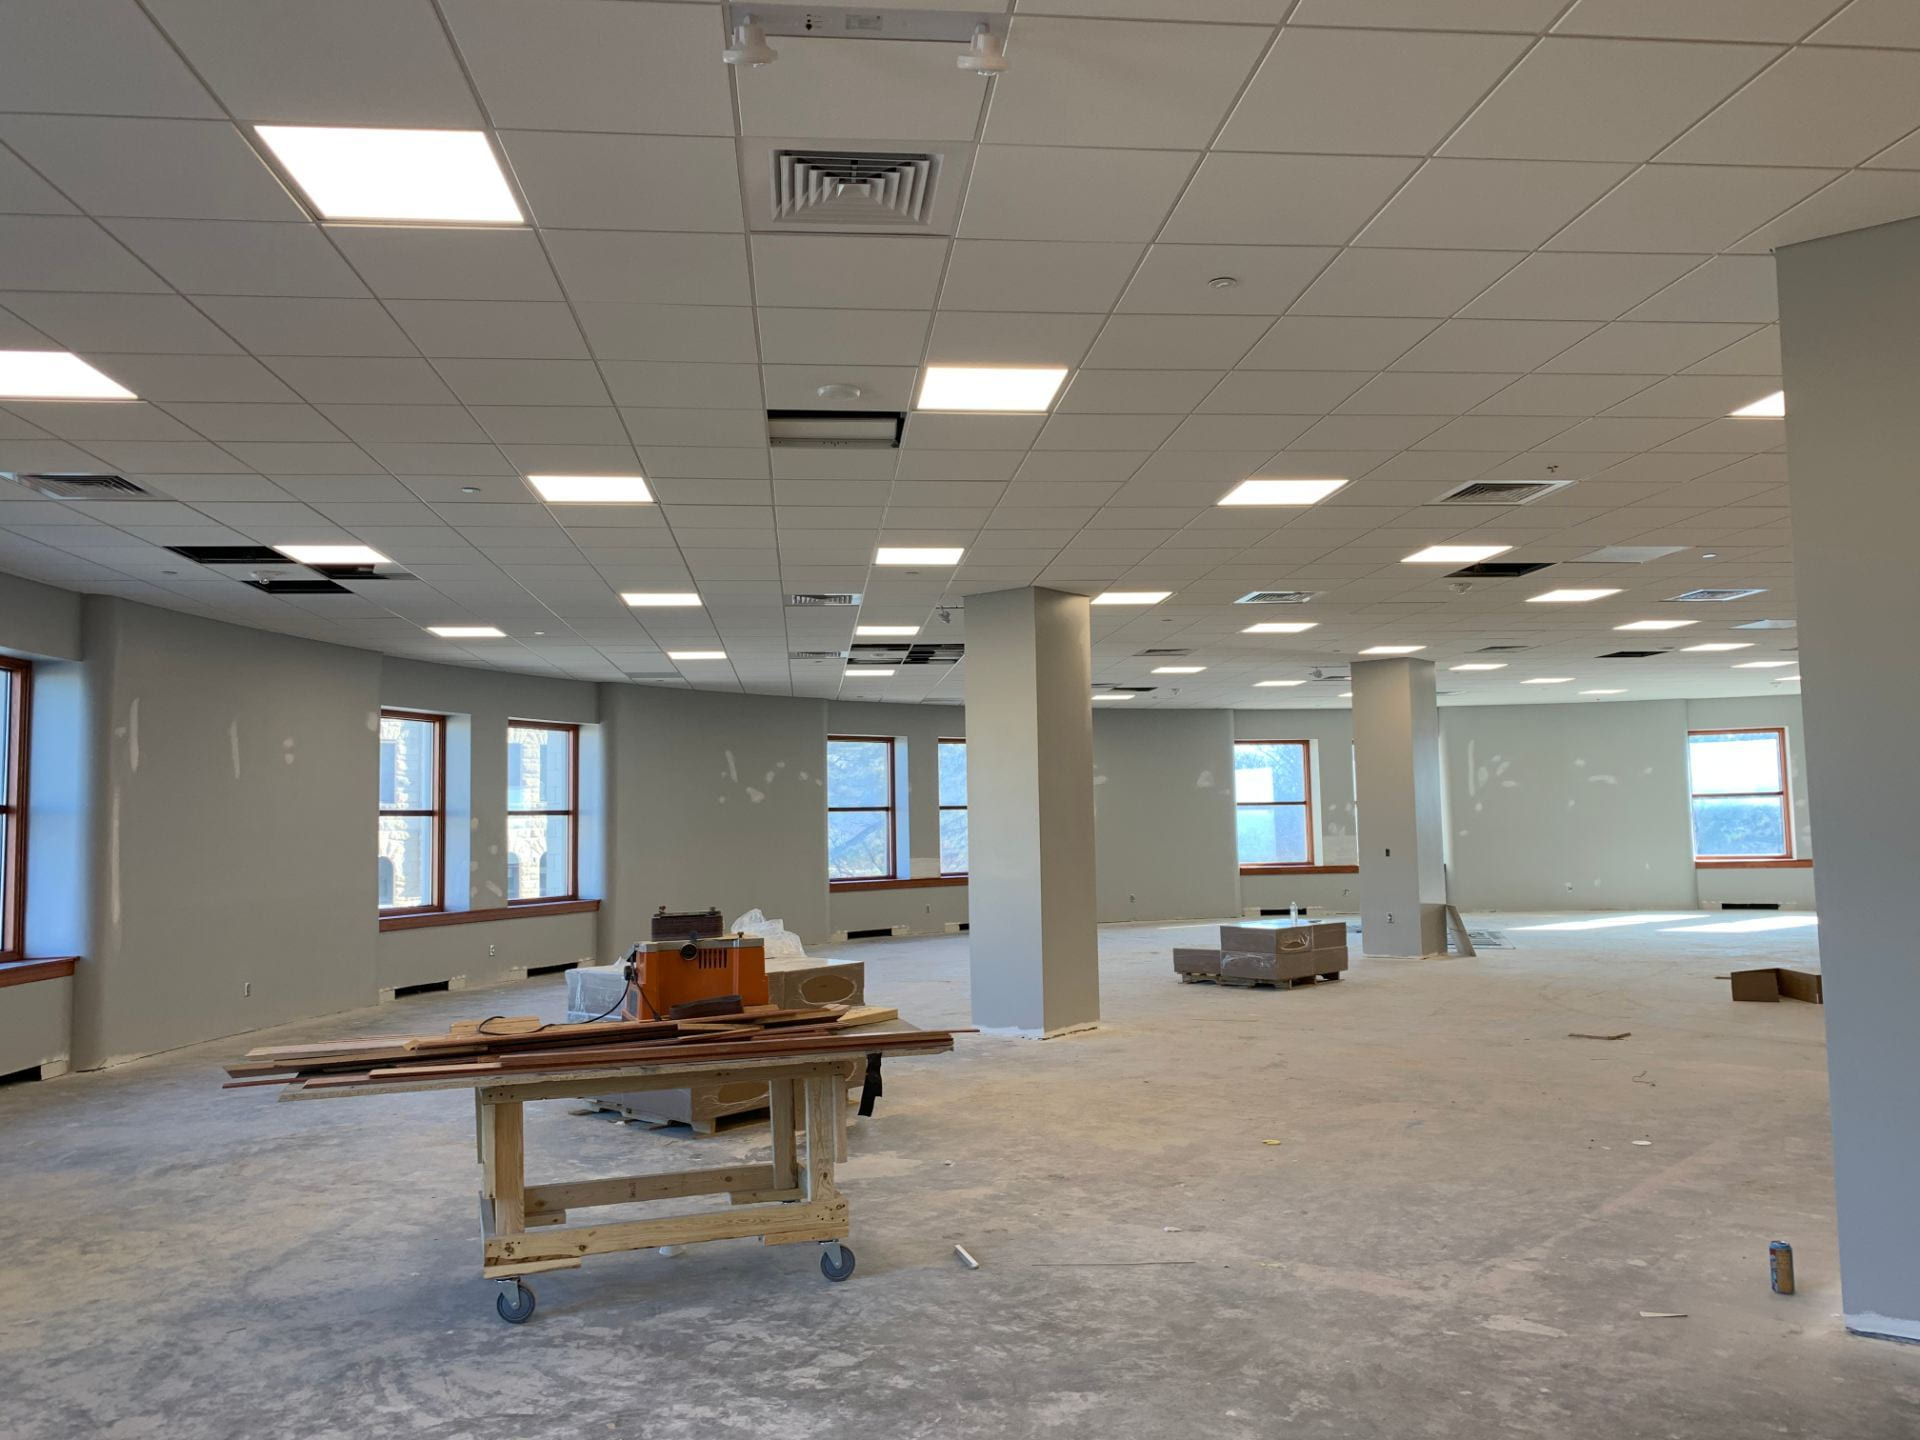 The east end of Hale Library's second floor has sheetrock and ceiling installed, but not flooring